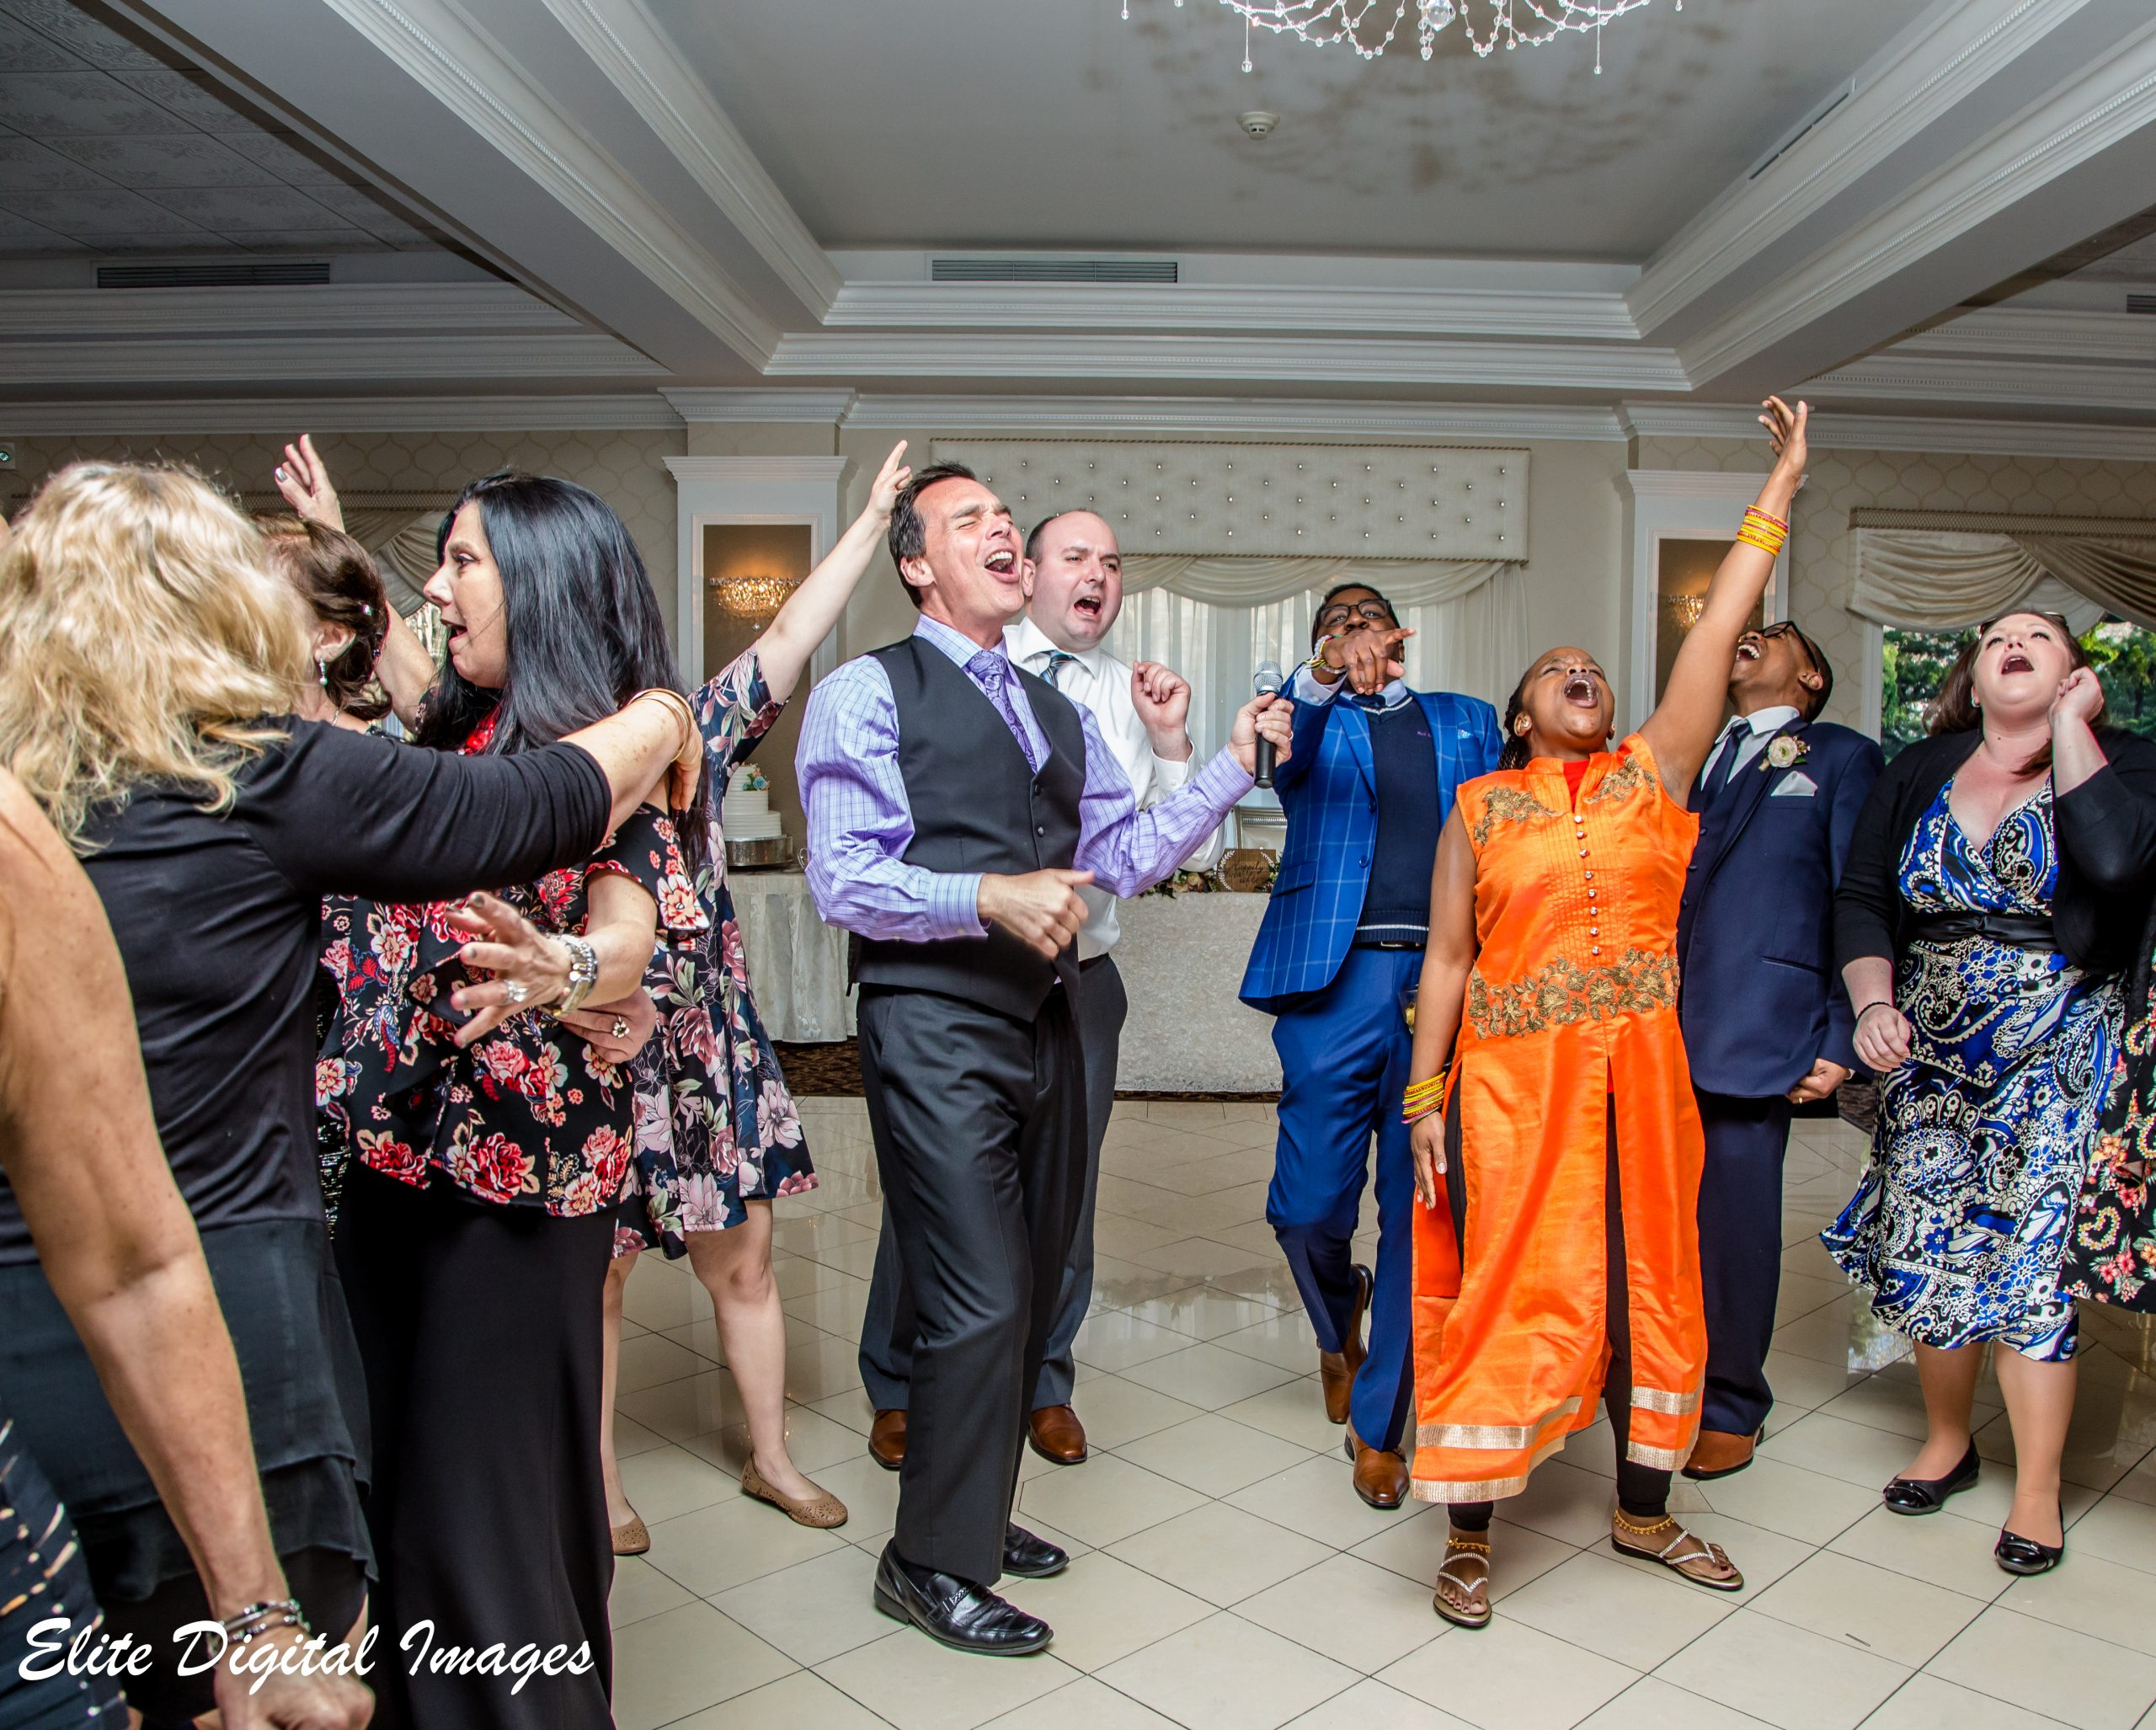 Elite Entertainment_ NJWedding_ EliteDigitalImages_EnglishManor_Danielle and Michael_Mike Walter 6